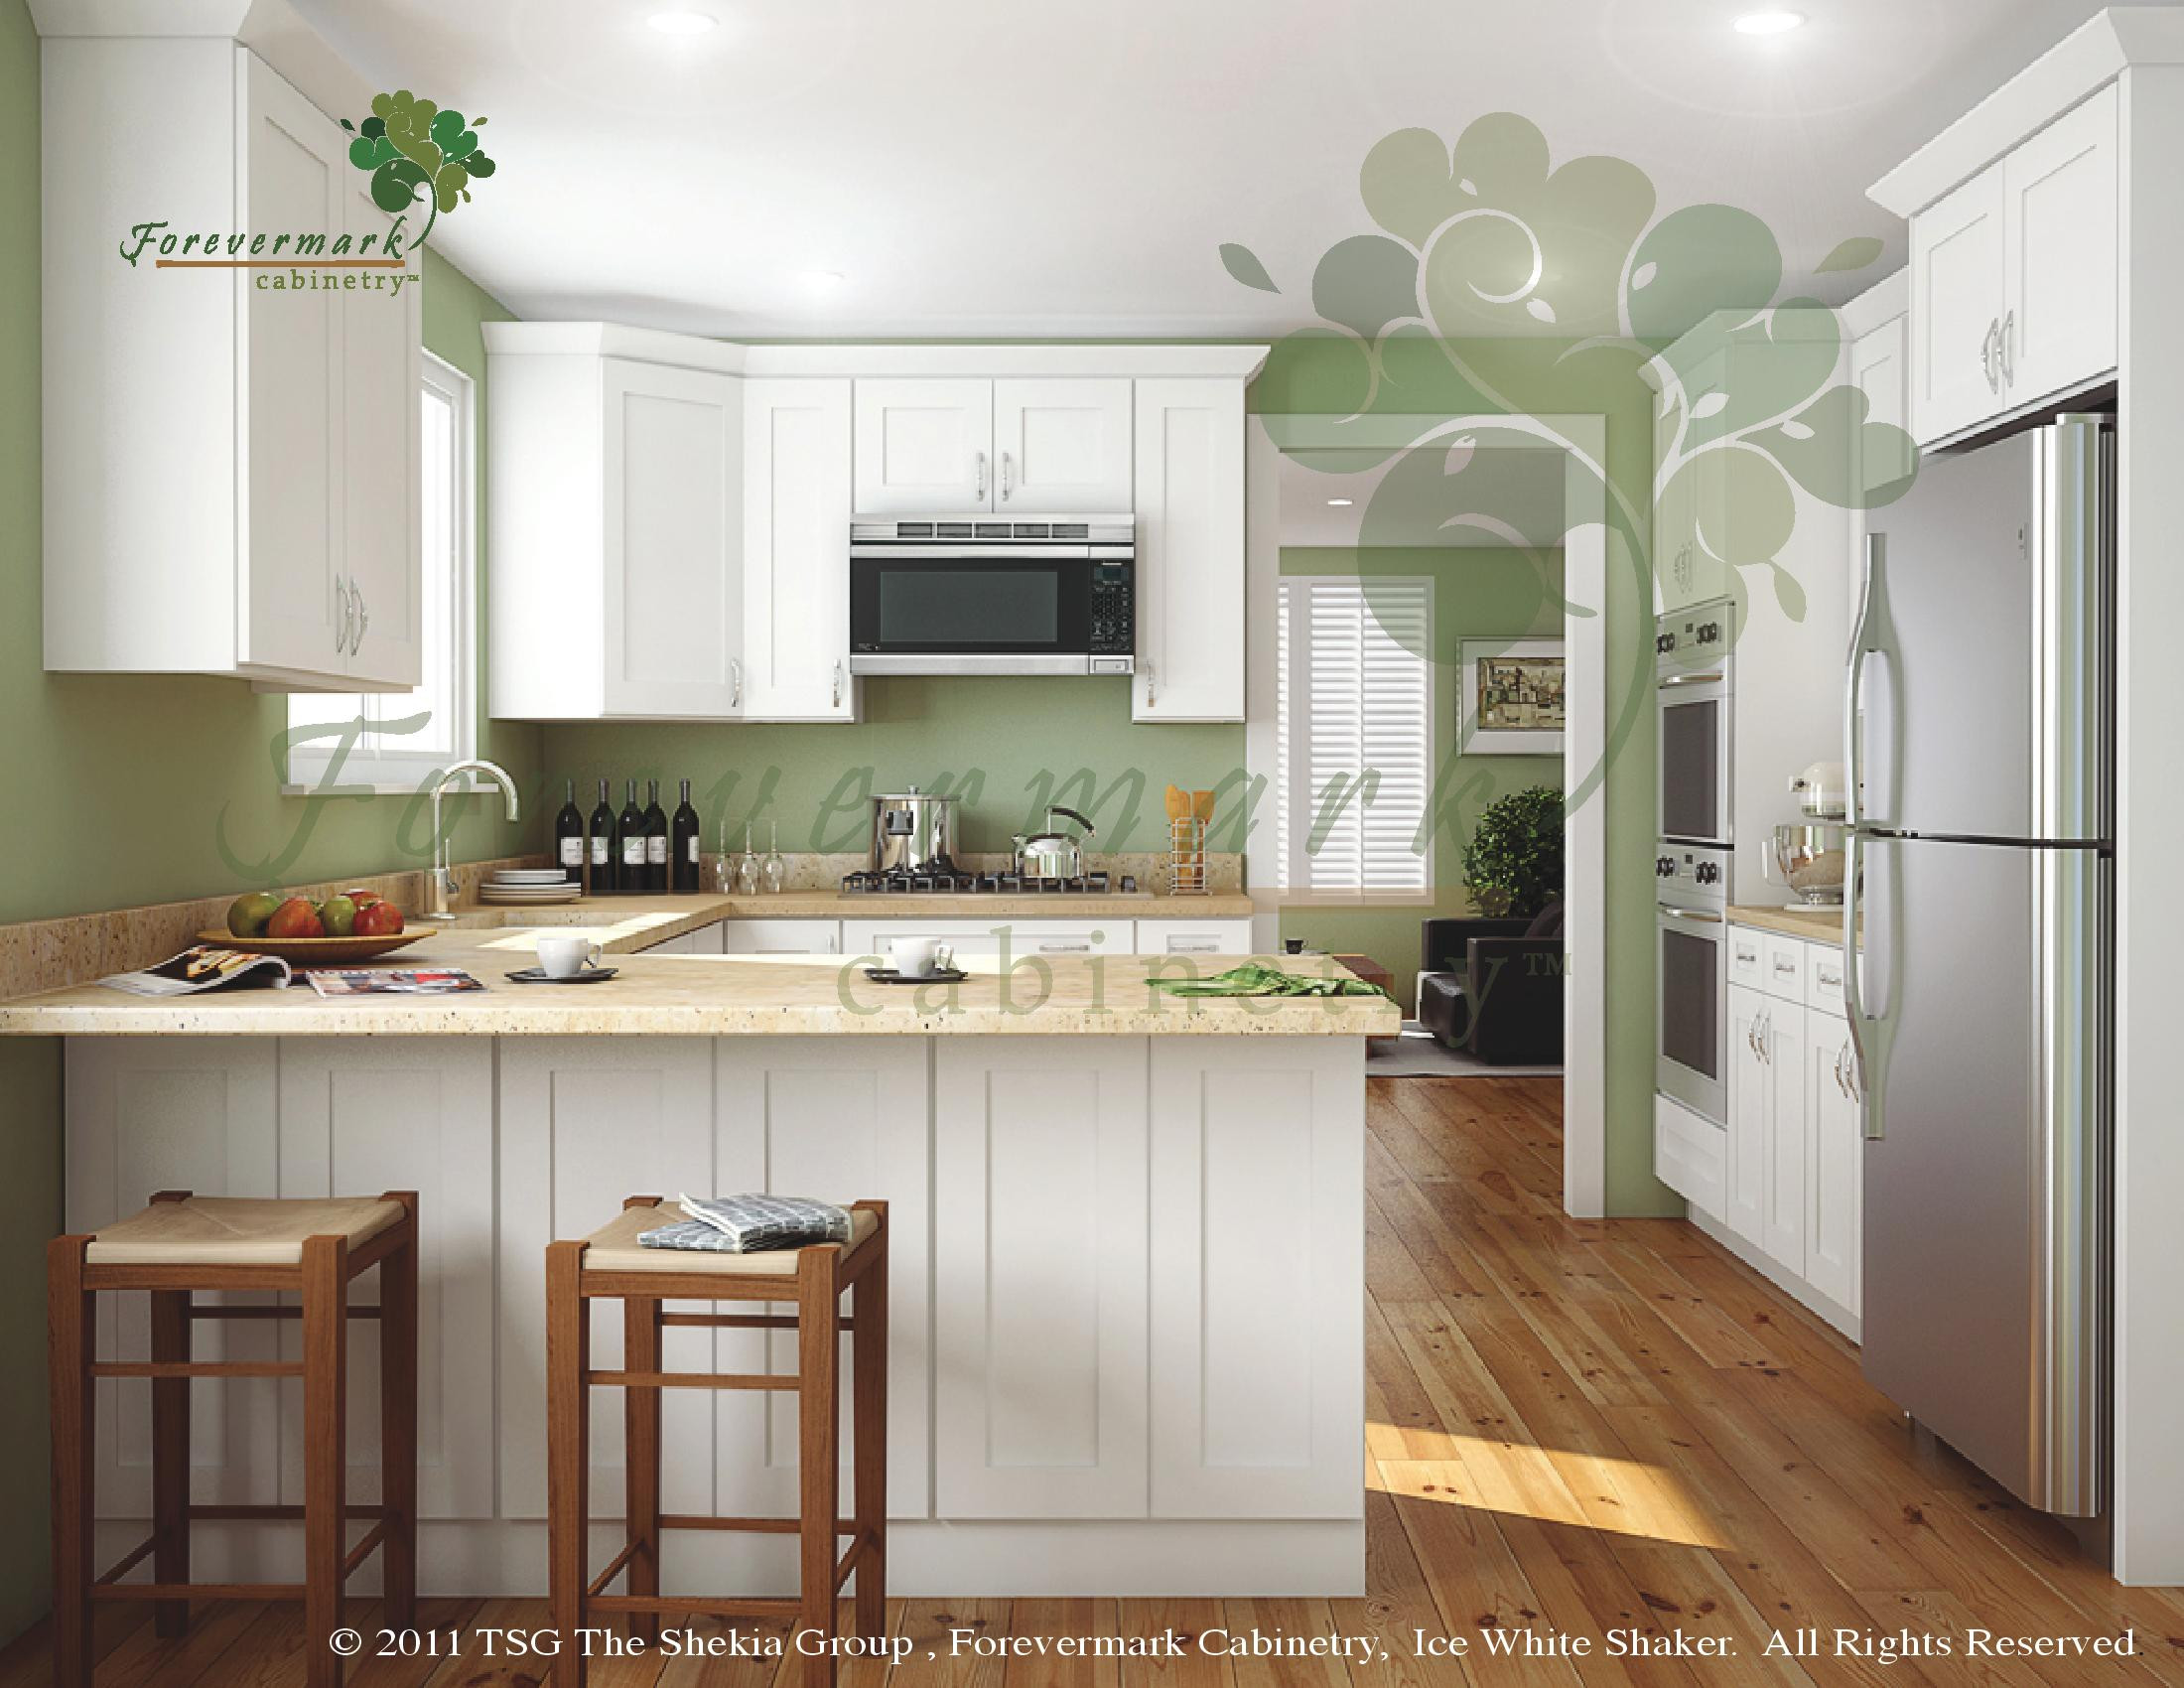 Best ideas about Cabinet Design Online . Save or Pin Buy Ice White Shaker Kitchen Cabinets line Now.